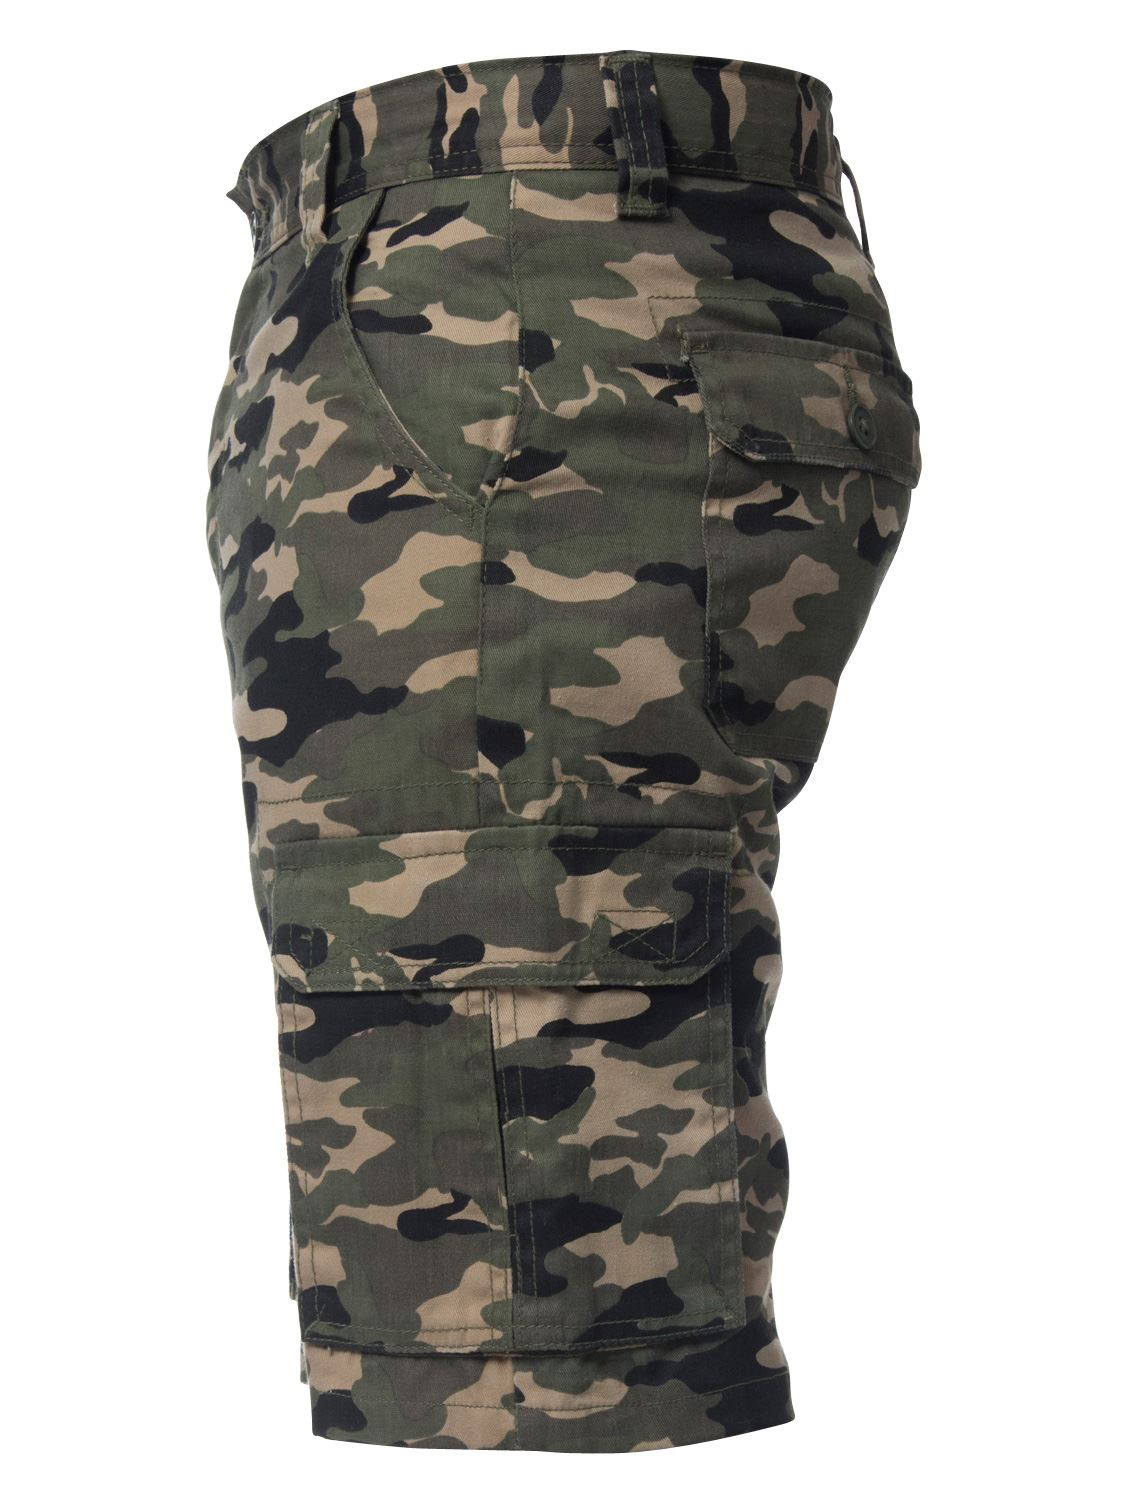 Kruze-Jeans-Mens-Army-Combat-Shorts-Camouflage-Cargo-Casual-Camo-Work-Half-Pants thumbnail 16